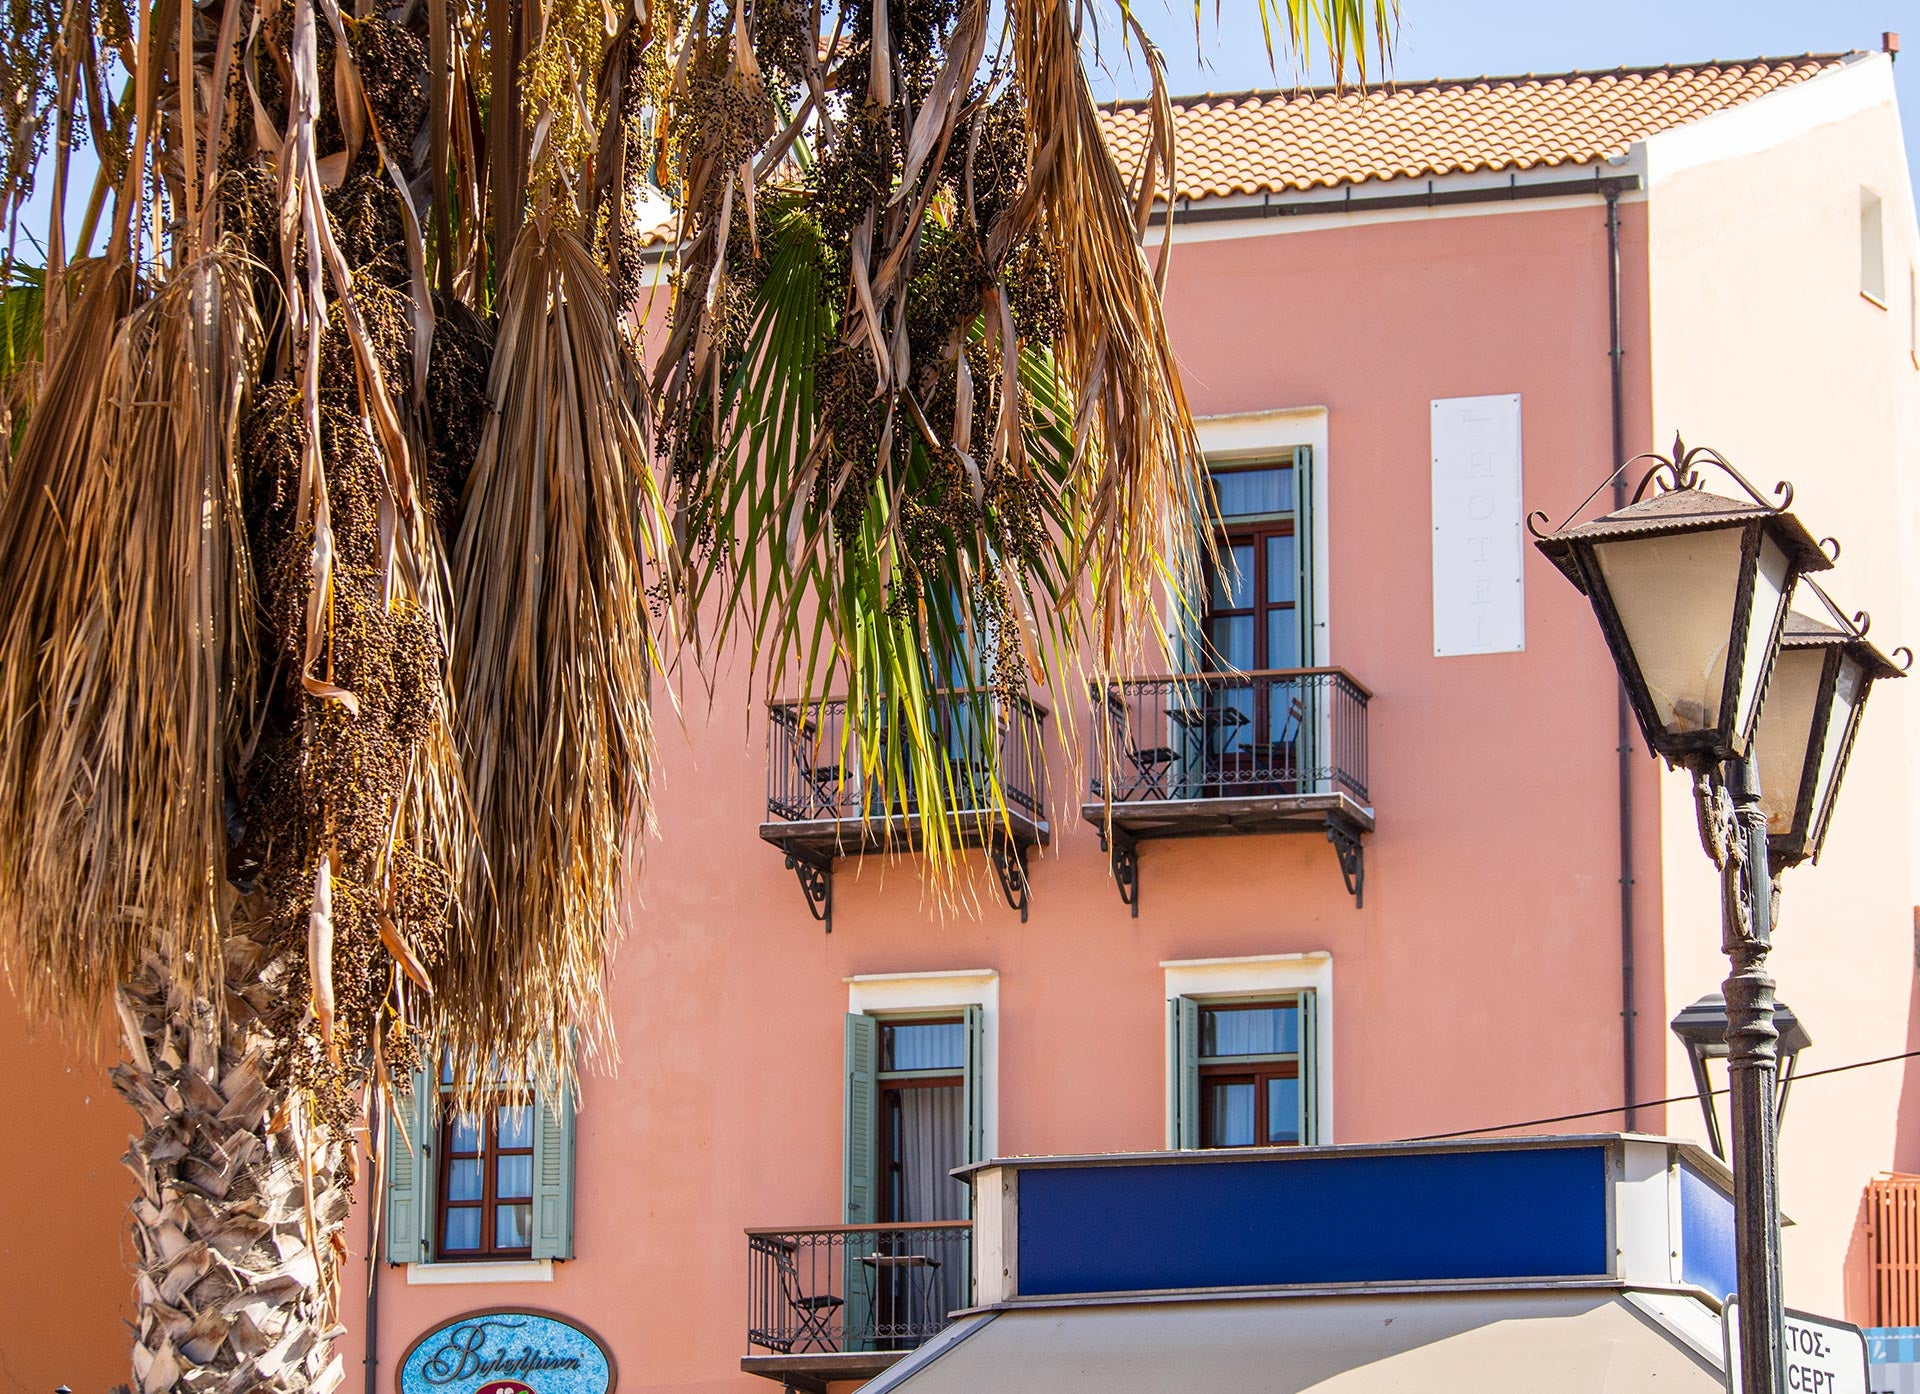 Chania Pink Building & Palm Tree